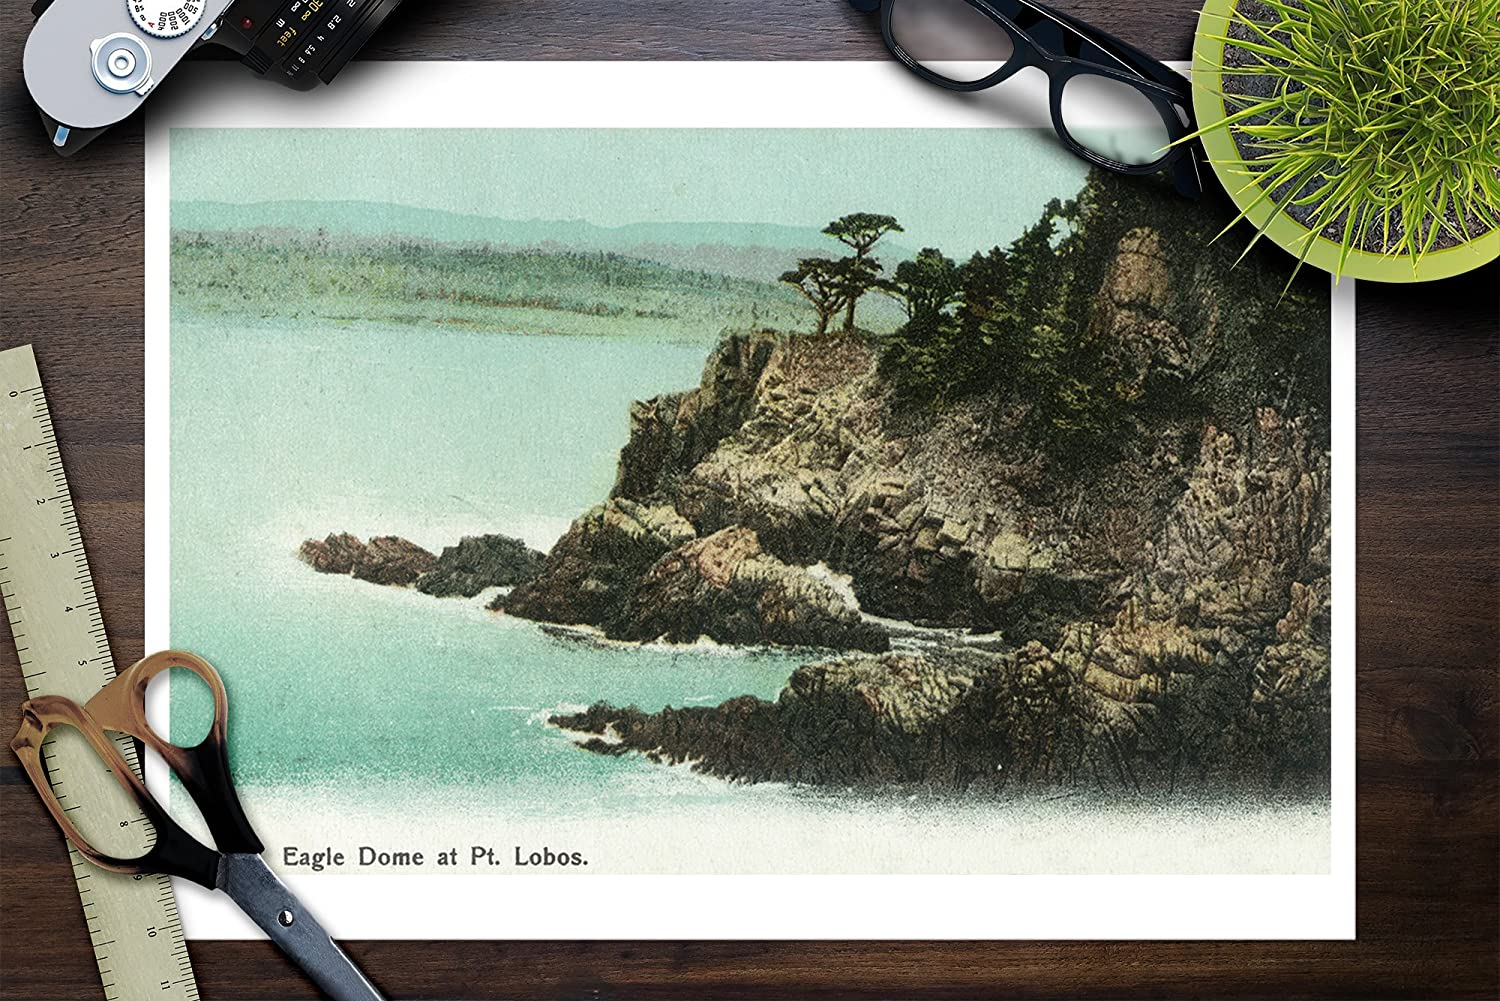 Amazon.com: Los Gatos, California - Aerial View of Eagle Dome at Point Lobos (9x12 Fine Art Print, Home Wall Decor Artwork Poster): Posters & Prints